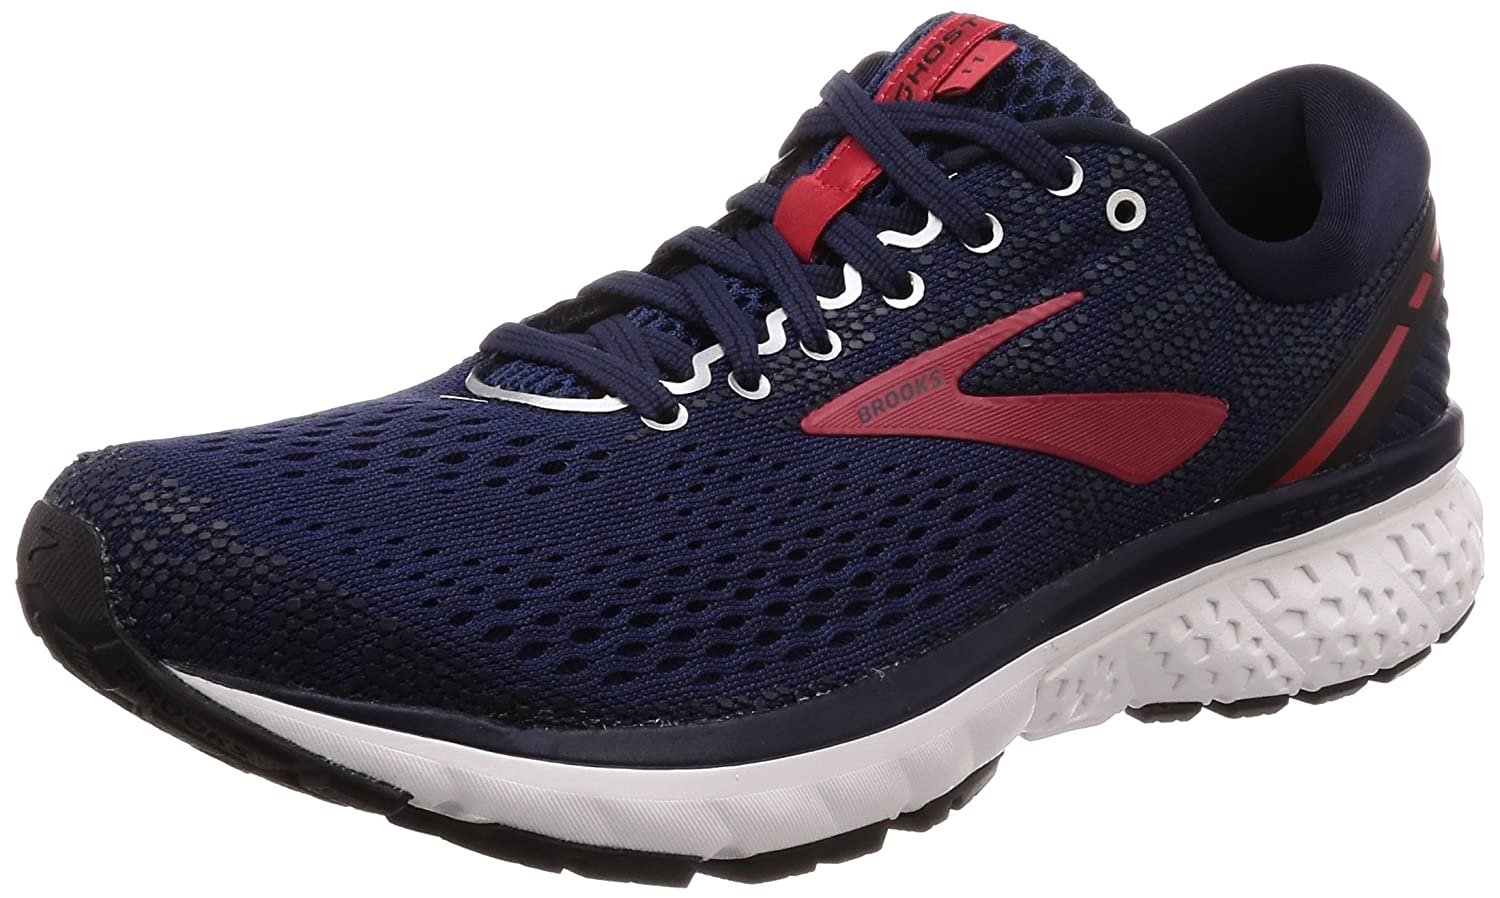 Brooks Men's Ghost 11 Running Shoes B077QN3SCL 9 M US|Navy/Red/White